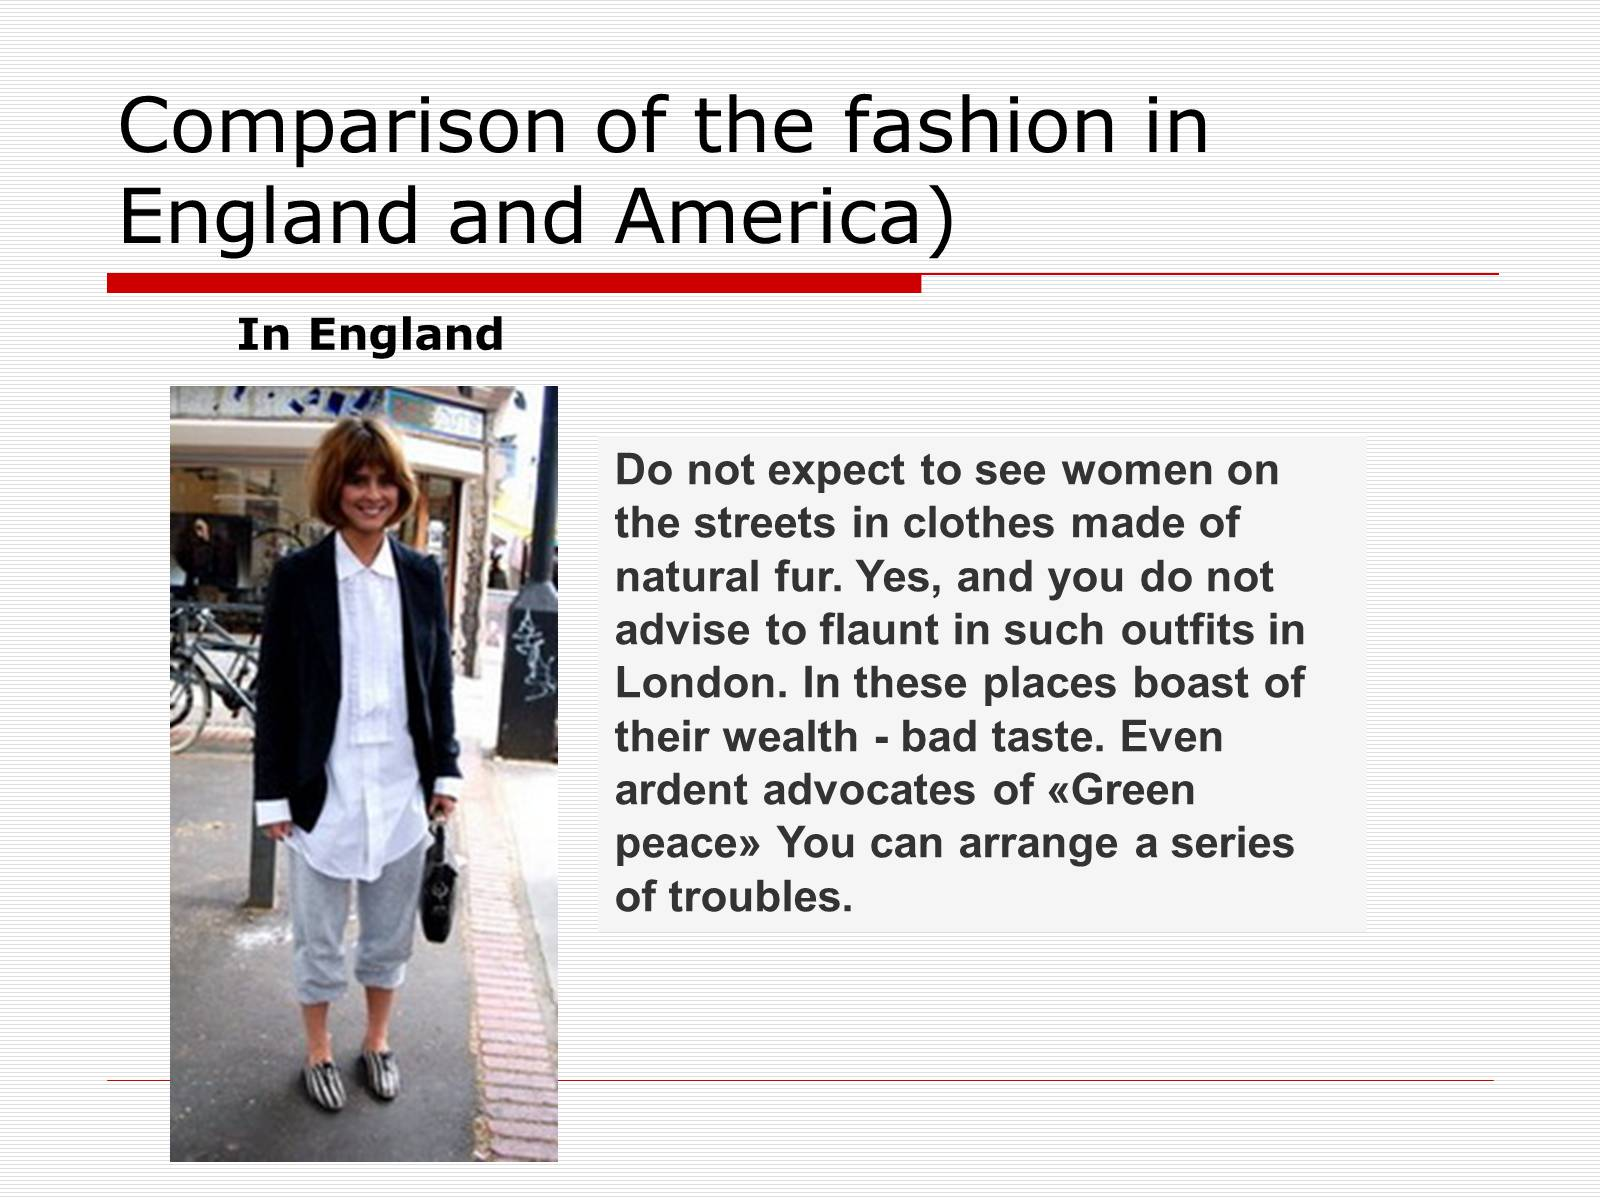 Презентація на тему «Comparison of the fashion in England and America» - Слайд #23